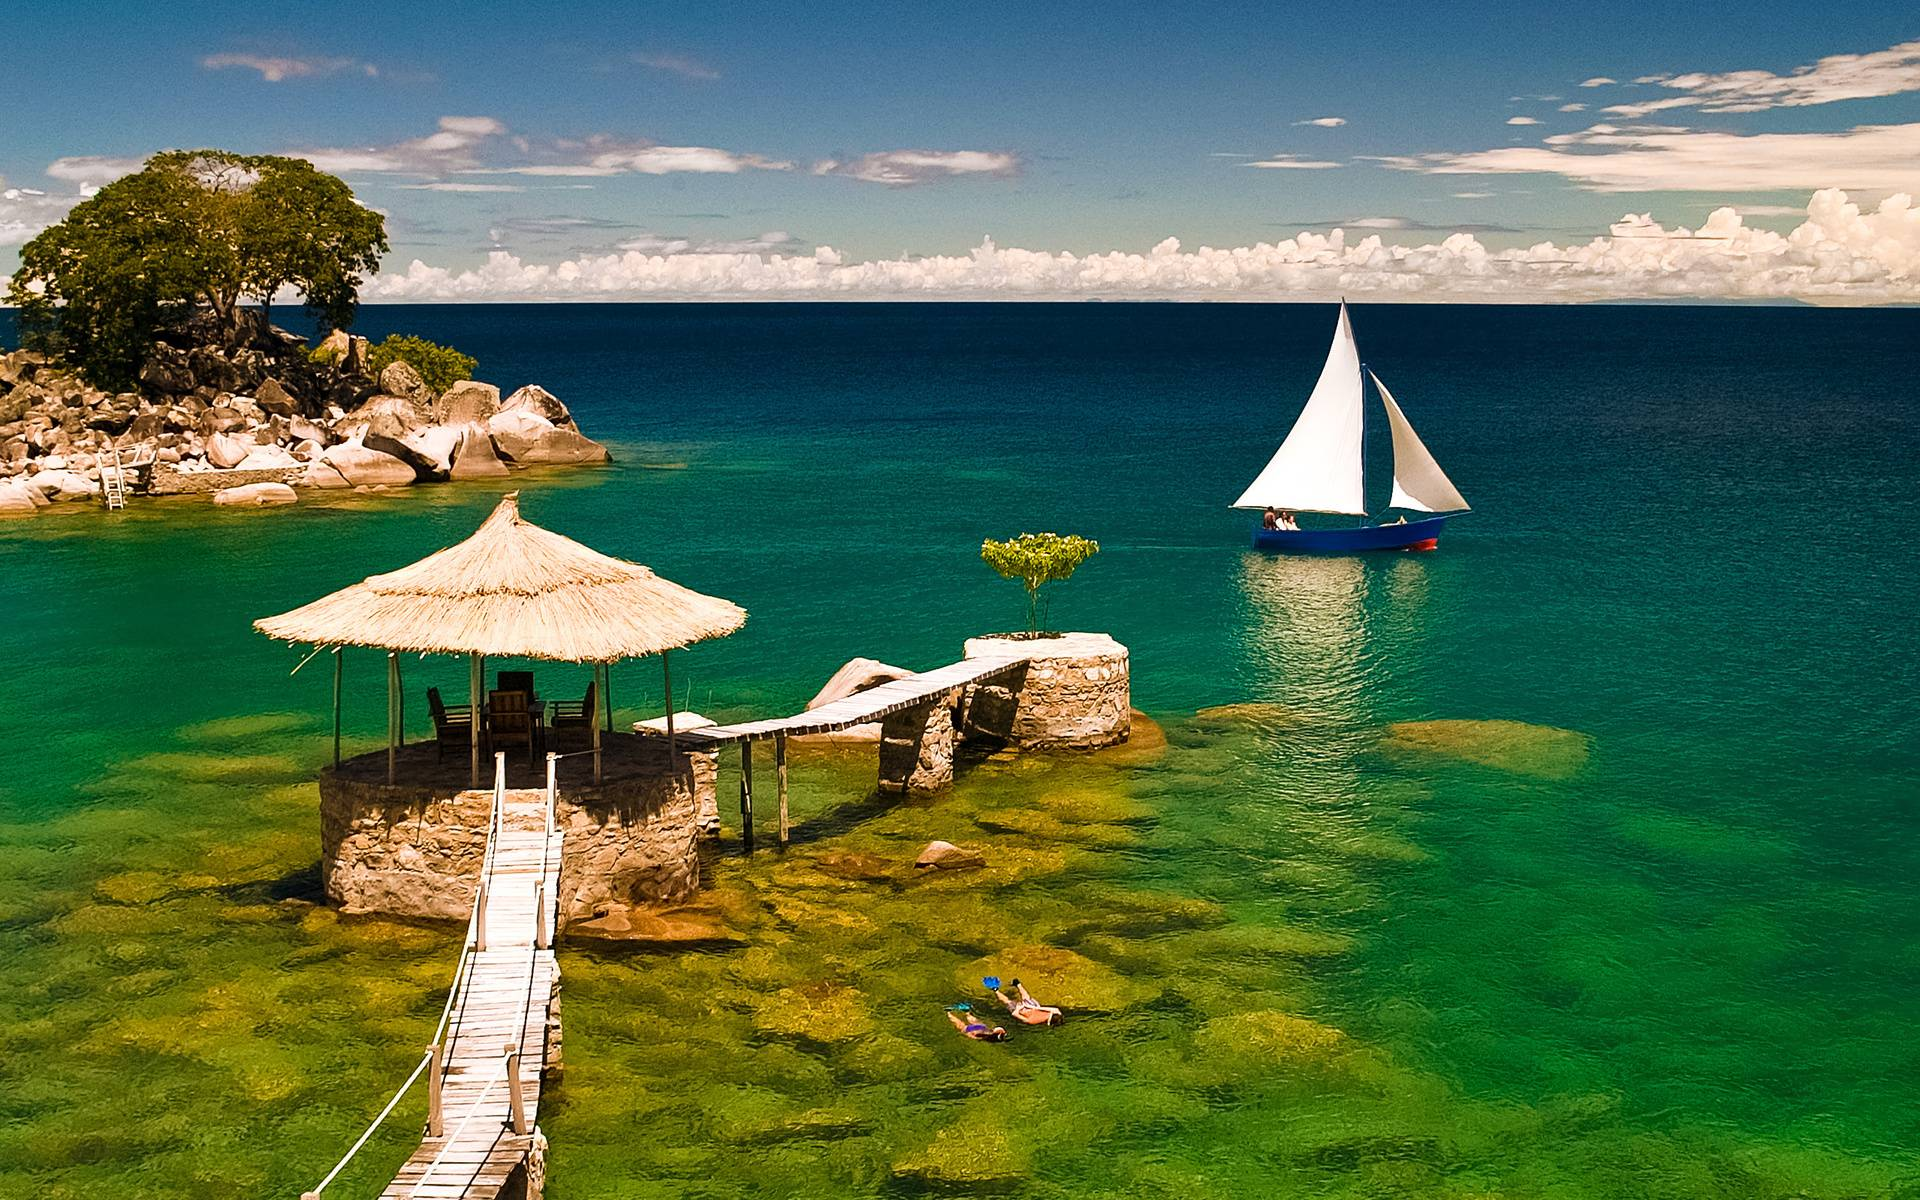 20 tropical backgrounds - photo #24